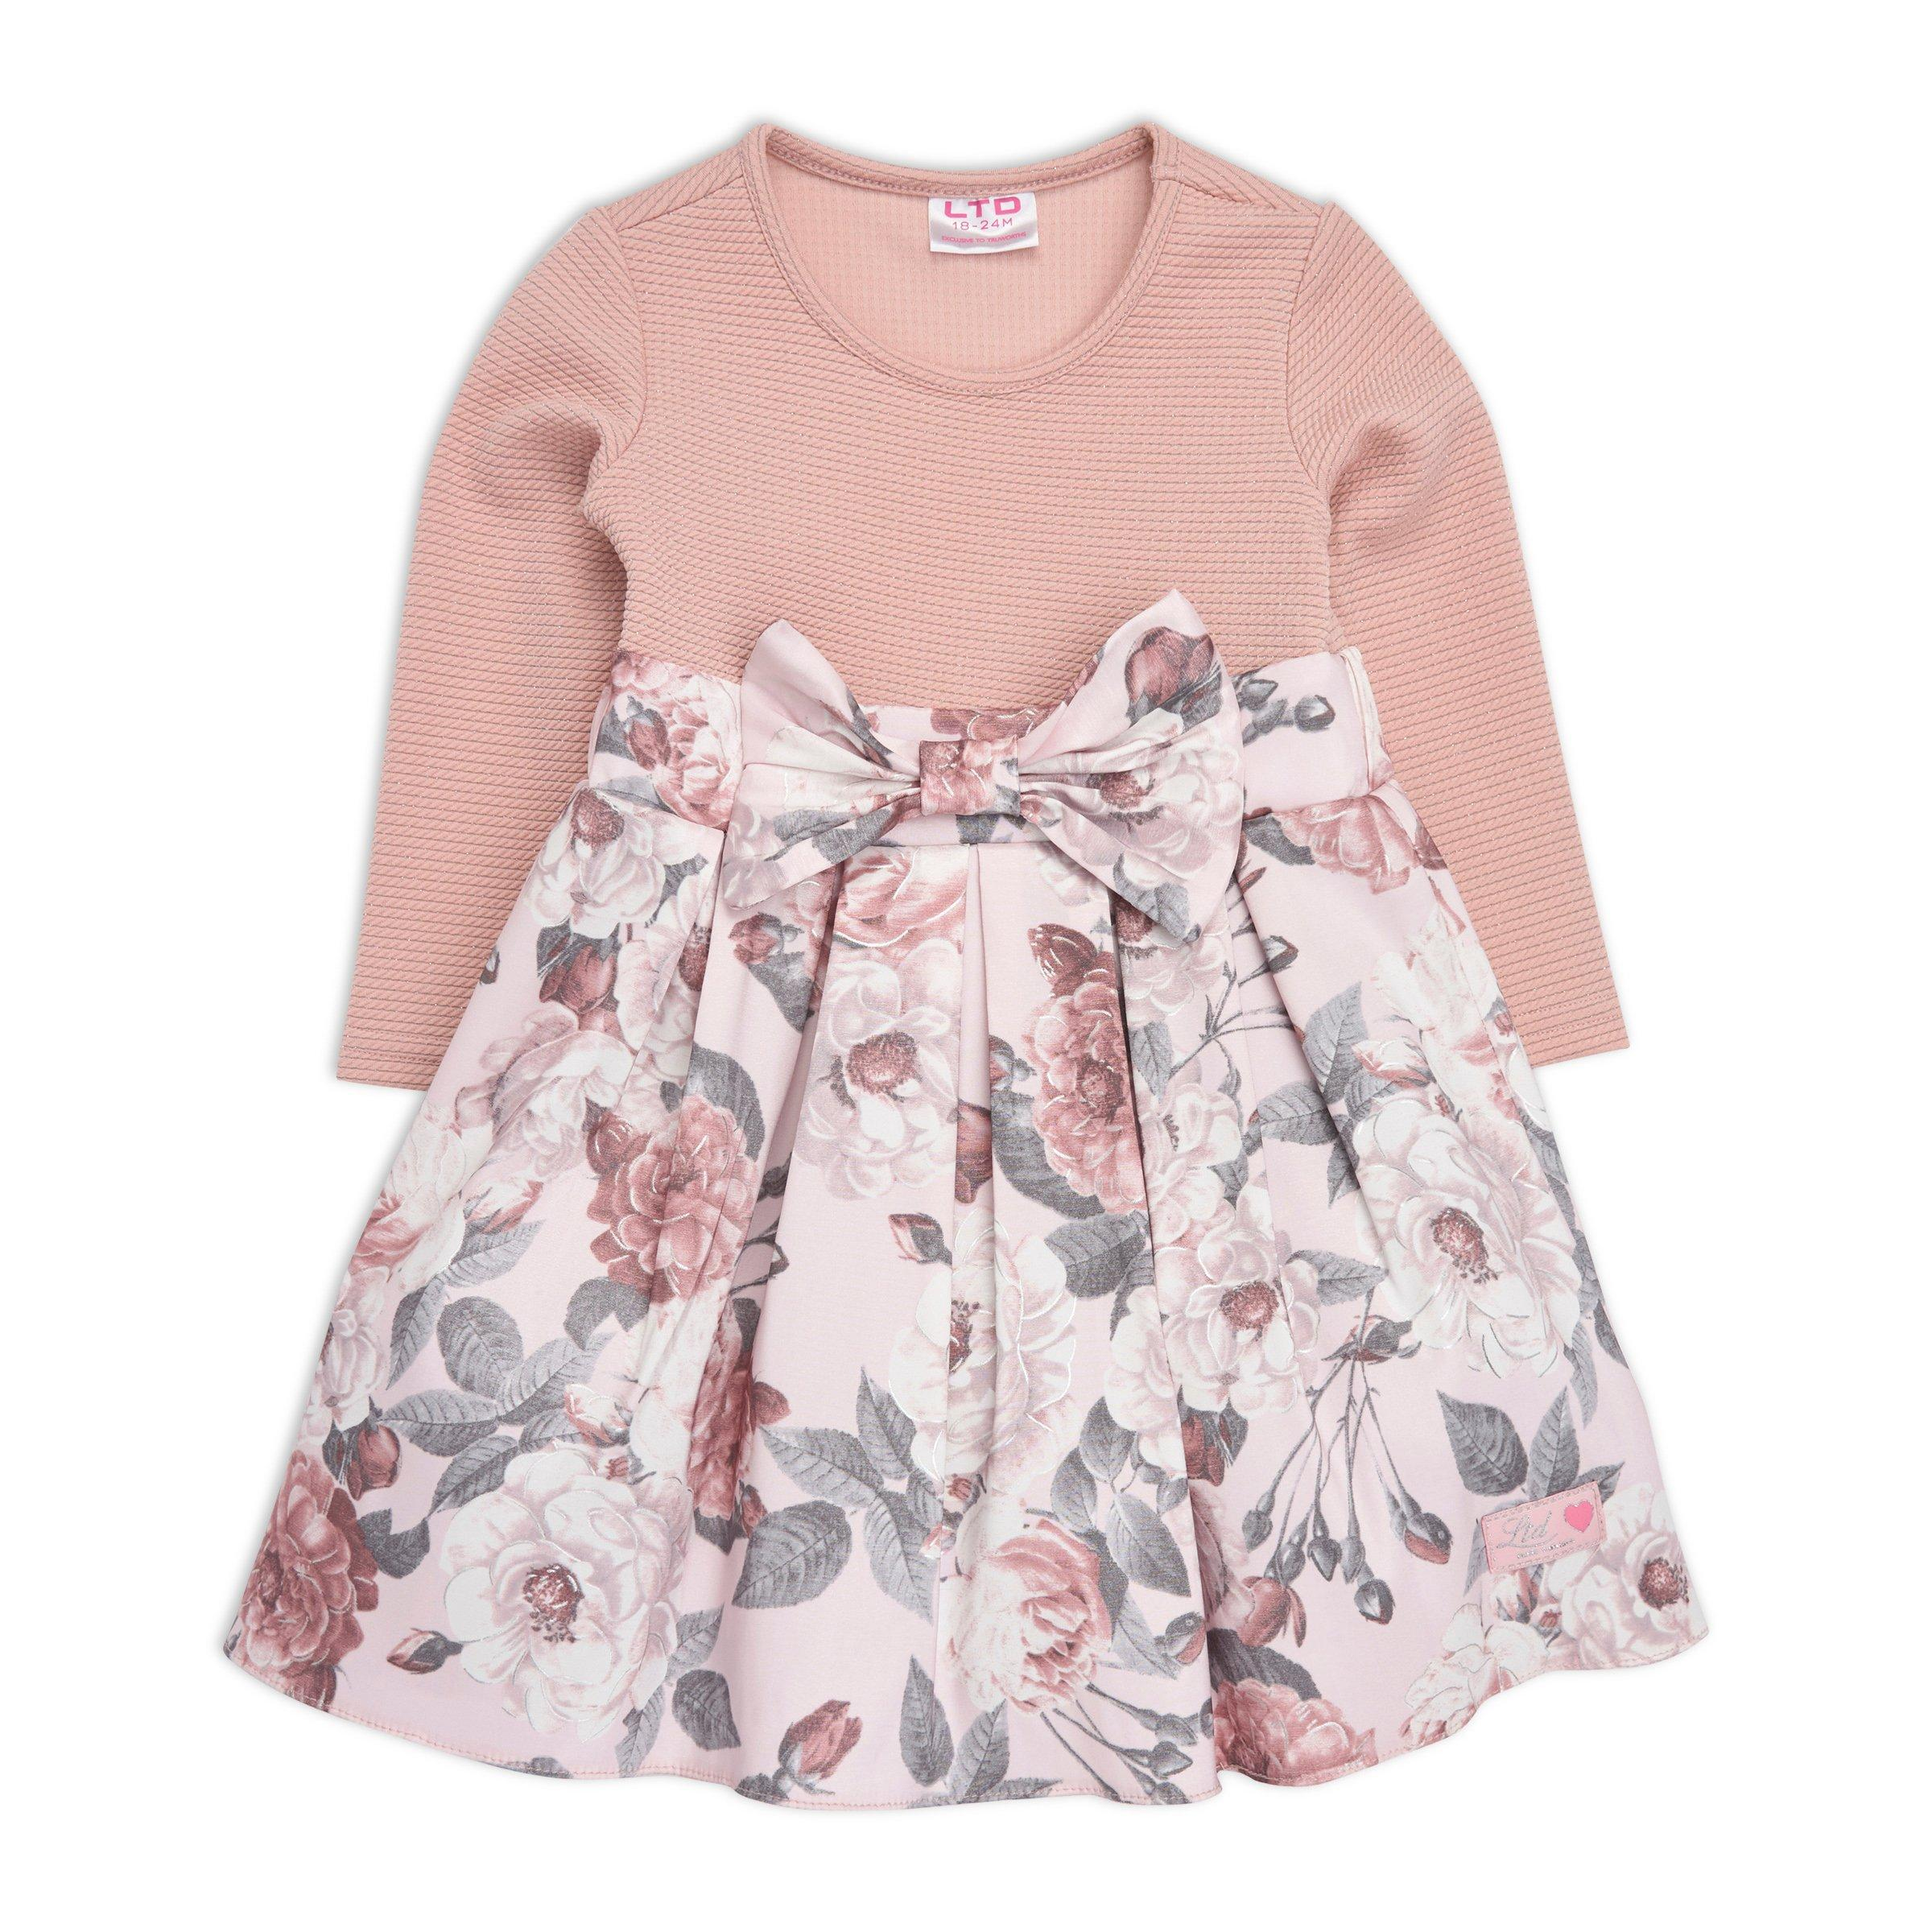 buy ltd kids baby girl party dress online  truworths